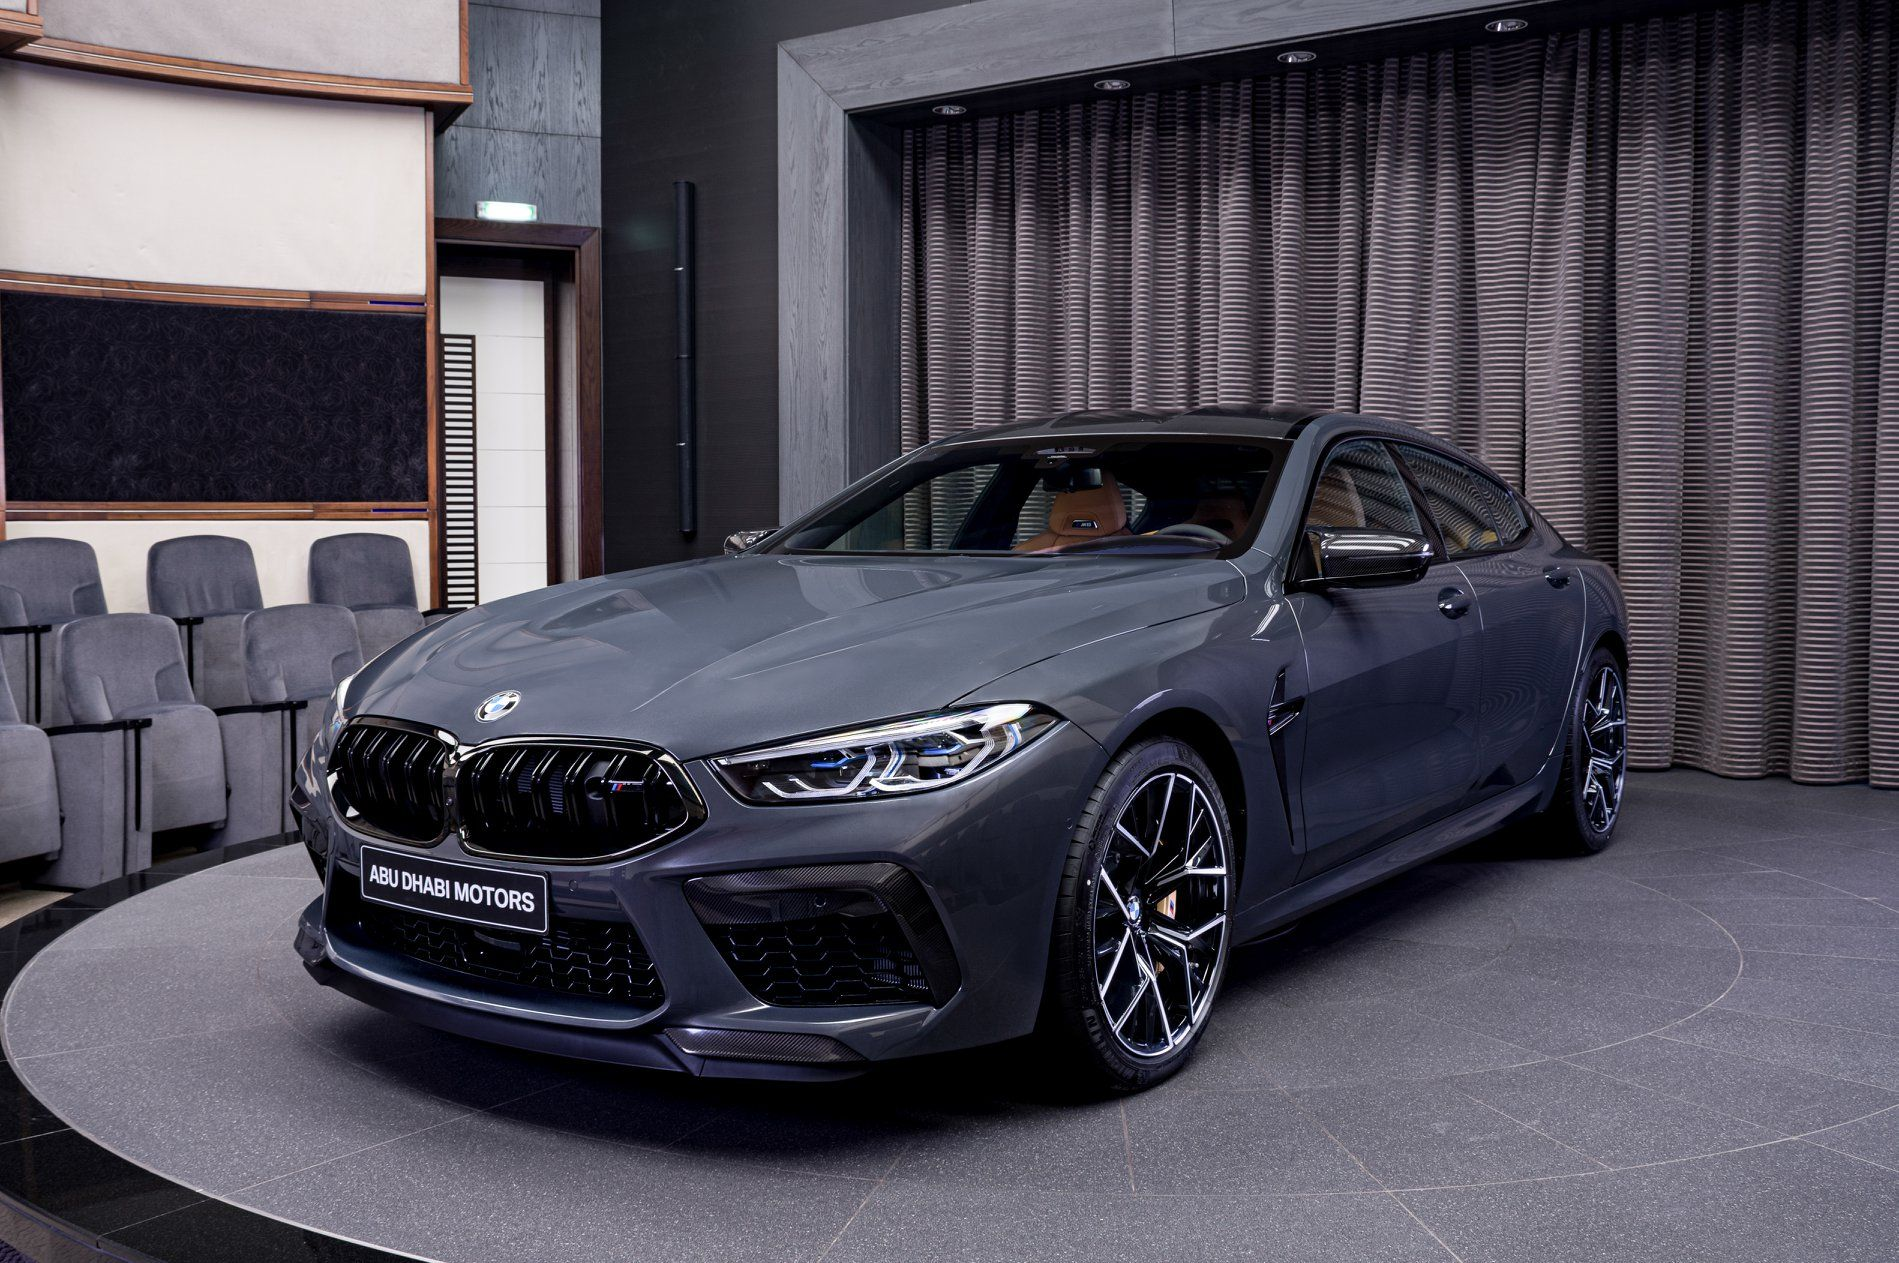 Stunning Bmw M8 Competition Gran Coupe Showcased In Brands Hatch